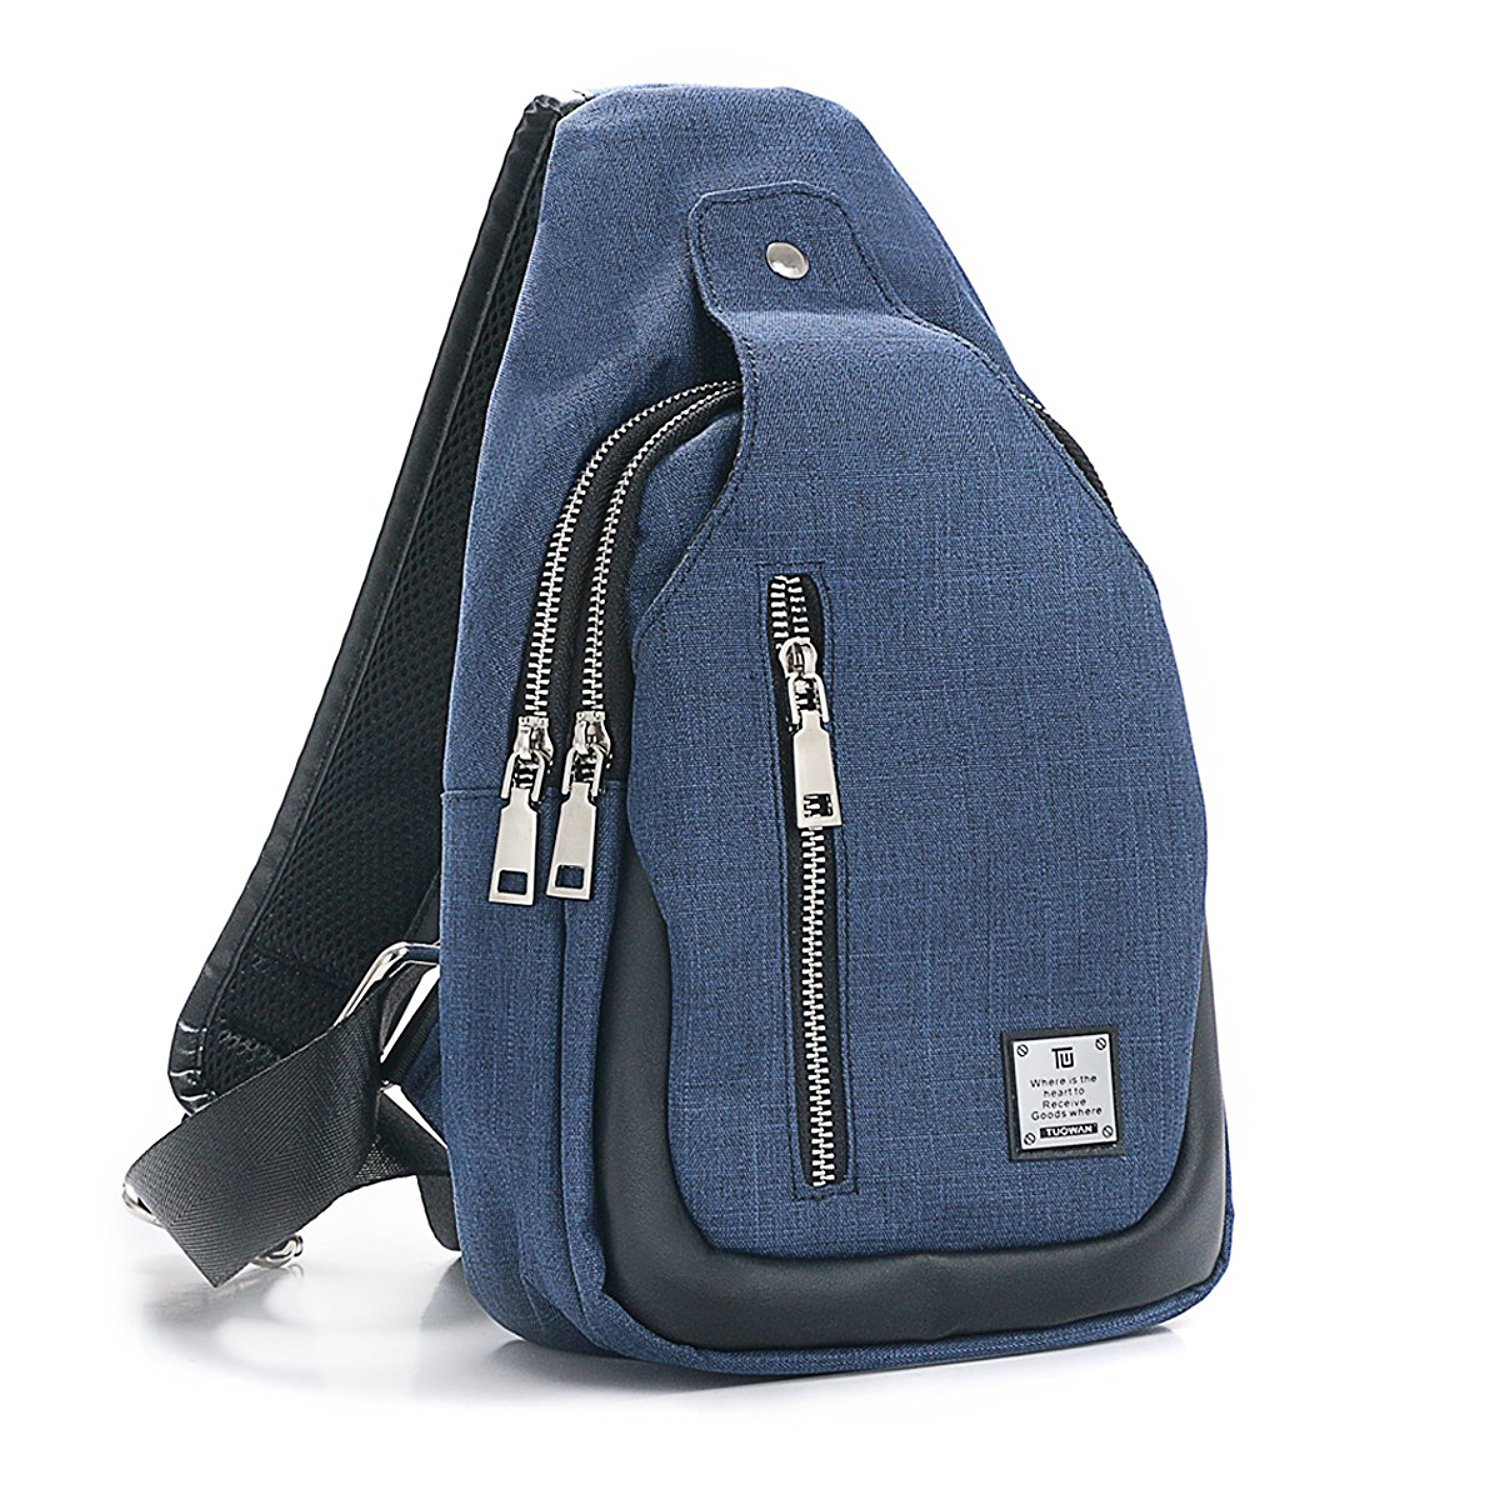 41a374b4b7 ✓Durable and Lightweight Sling Bag  Water resistant and anti-scratch nylon  oxford fabric